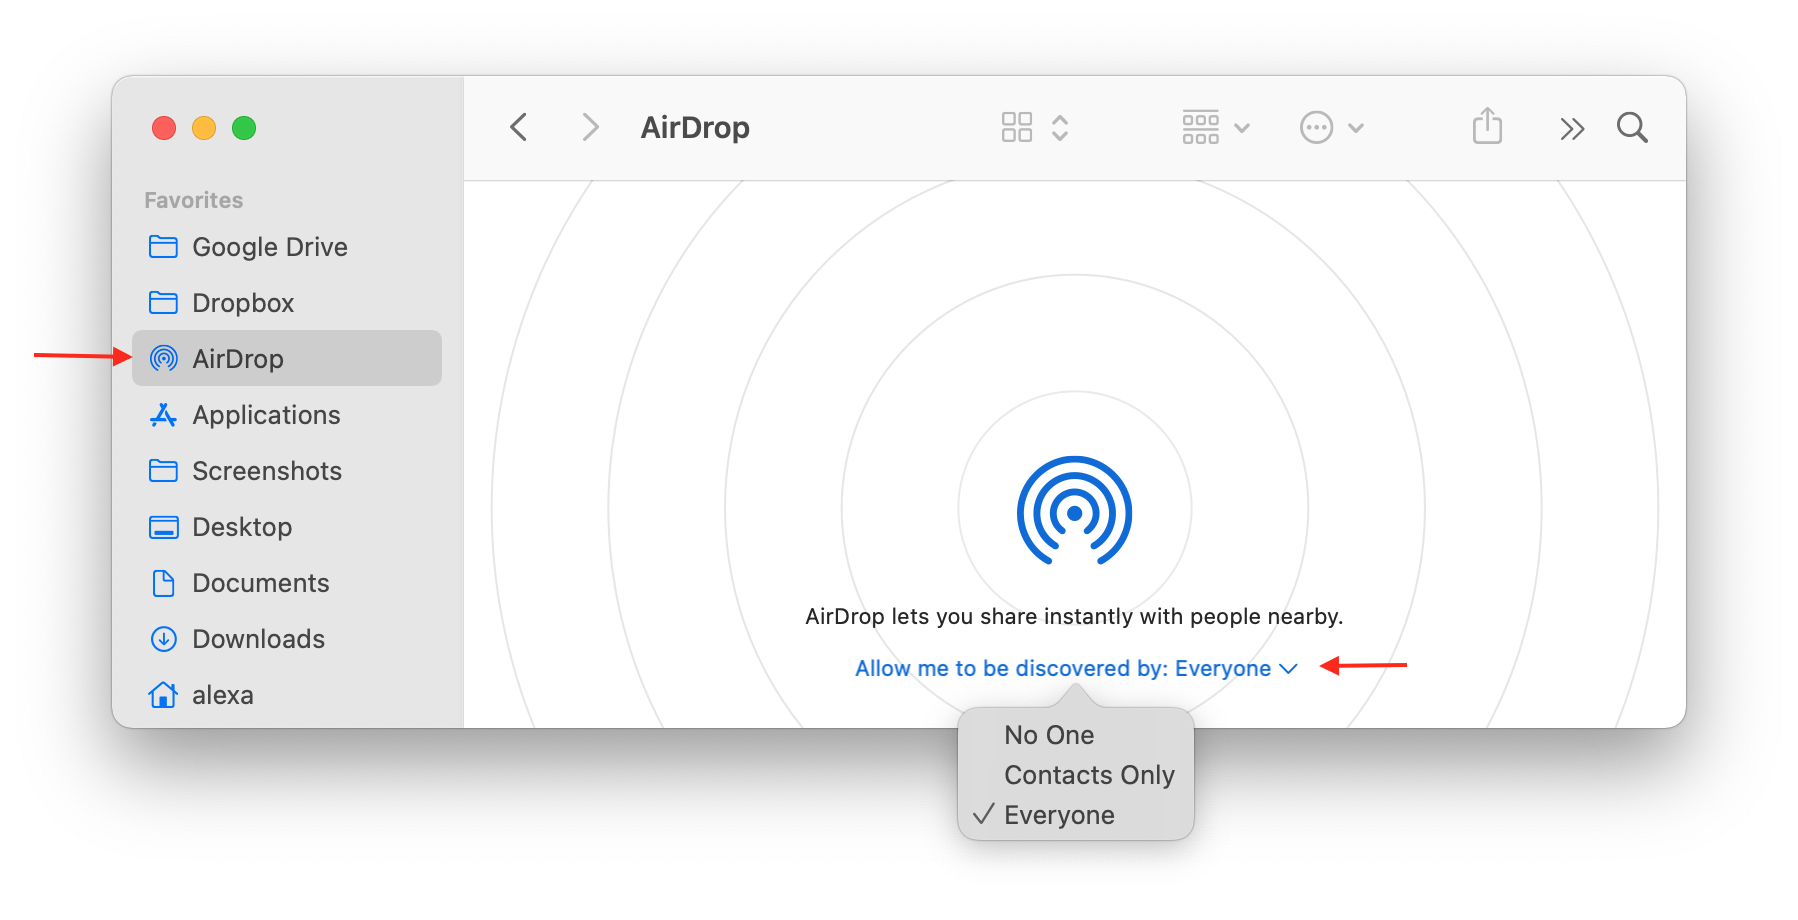 Finder showing the AirDrop section